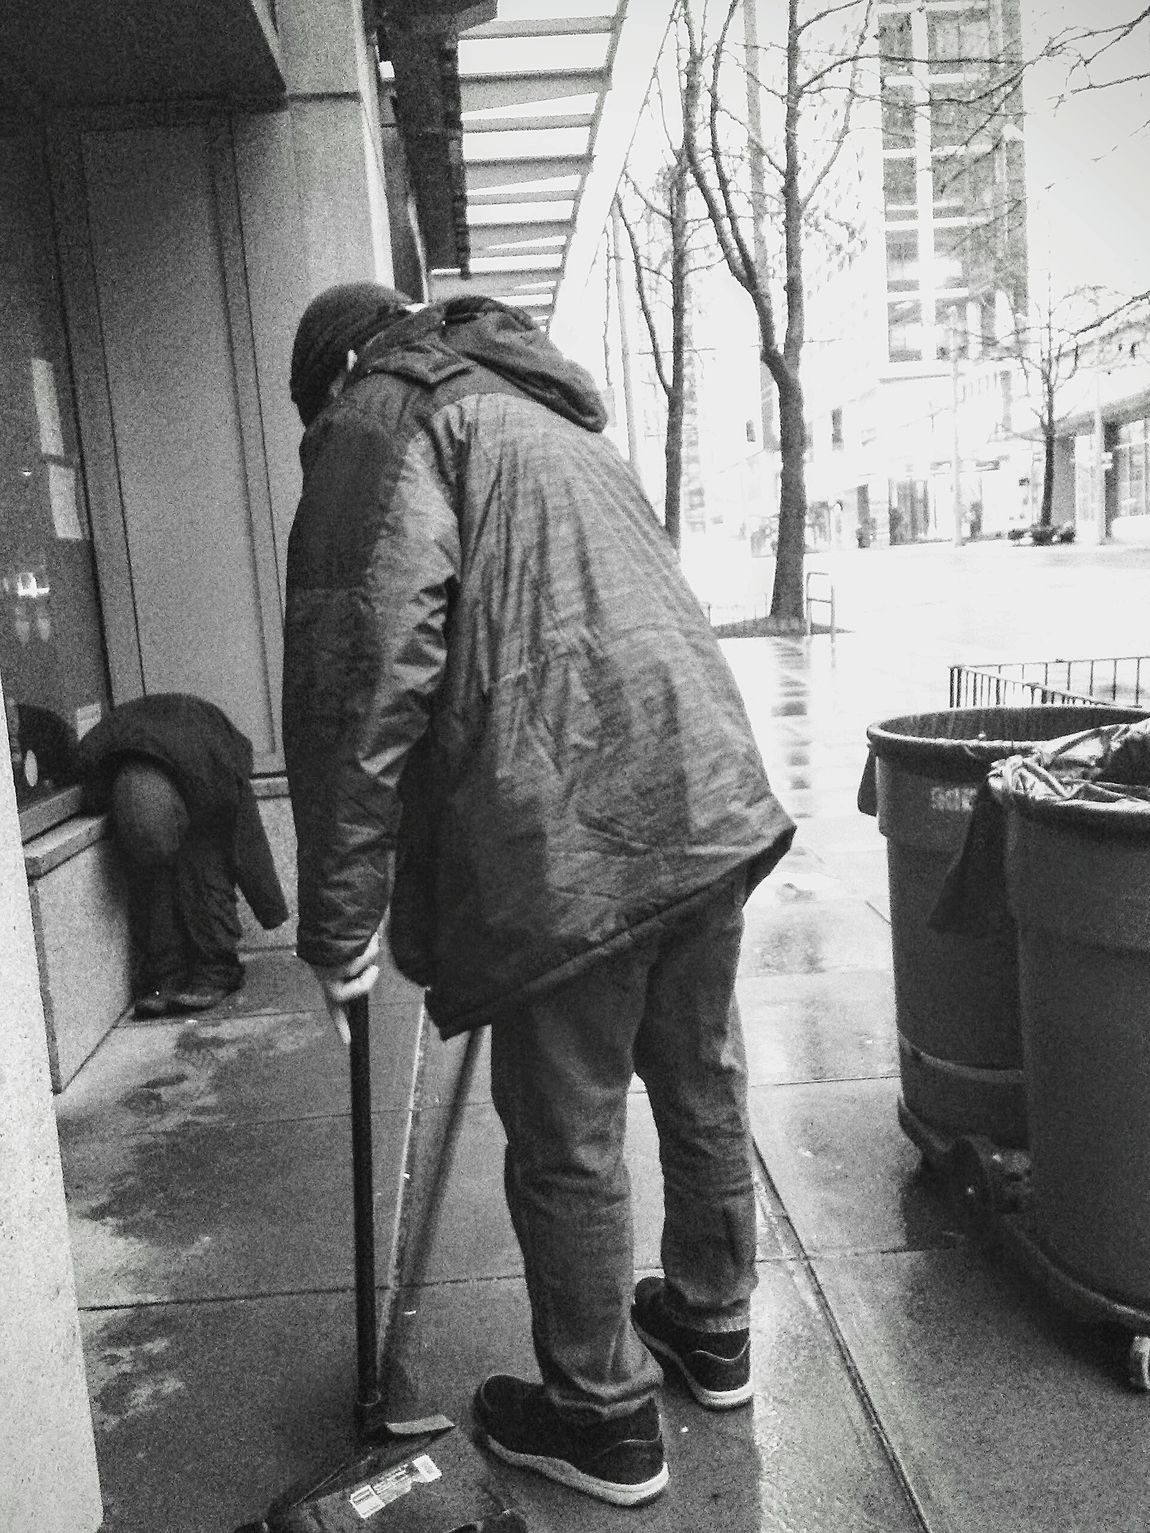 EyeEmNewHere One Person Homelessness  Addiction CompassionCreatesUnderstanding Warm Clothing Hungry Investing In Quality Of Life